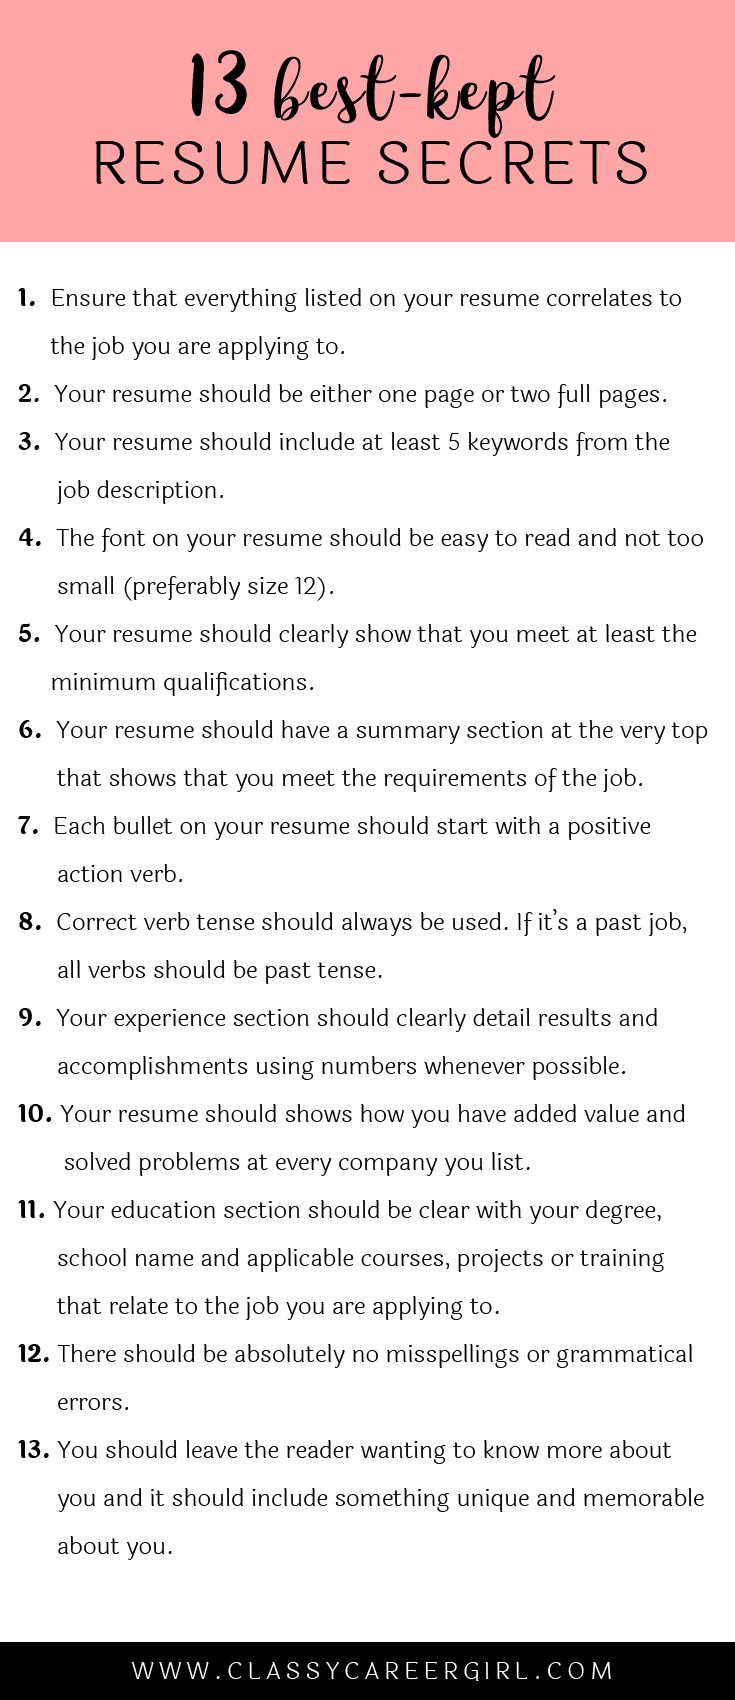 Opposenewapstandardsus  Surprising  Ideas About Resume On Pinterest  Cv Format Resume Cv And  With Outstanding Some Hiring Managers Will Toss Your Resume Out If You Dont Know These  With Attractive It Director Resume Also Government Resume In Addition Resume For Students And Resume For Free As Well As Programmer Resume Additionally How To Make A Resume Cover Letter From Pinterestcom With Opposenewapstandardsus  Outstanding  Ideas About Resume On Pinterest  Cv Format Resume Cv And  With Attractive Some Hiring Managers Will Toss Your Resume Out If You Dont Know These  And Surprising It Director Resume Also Government Resume In Addition Resume For Students From Pinterestcom